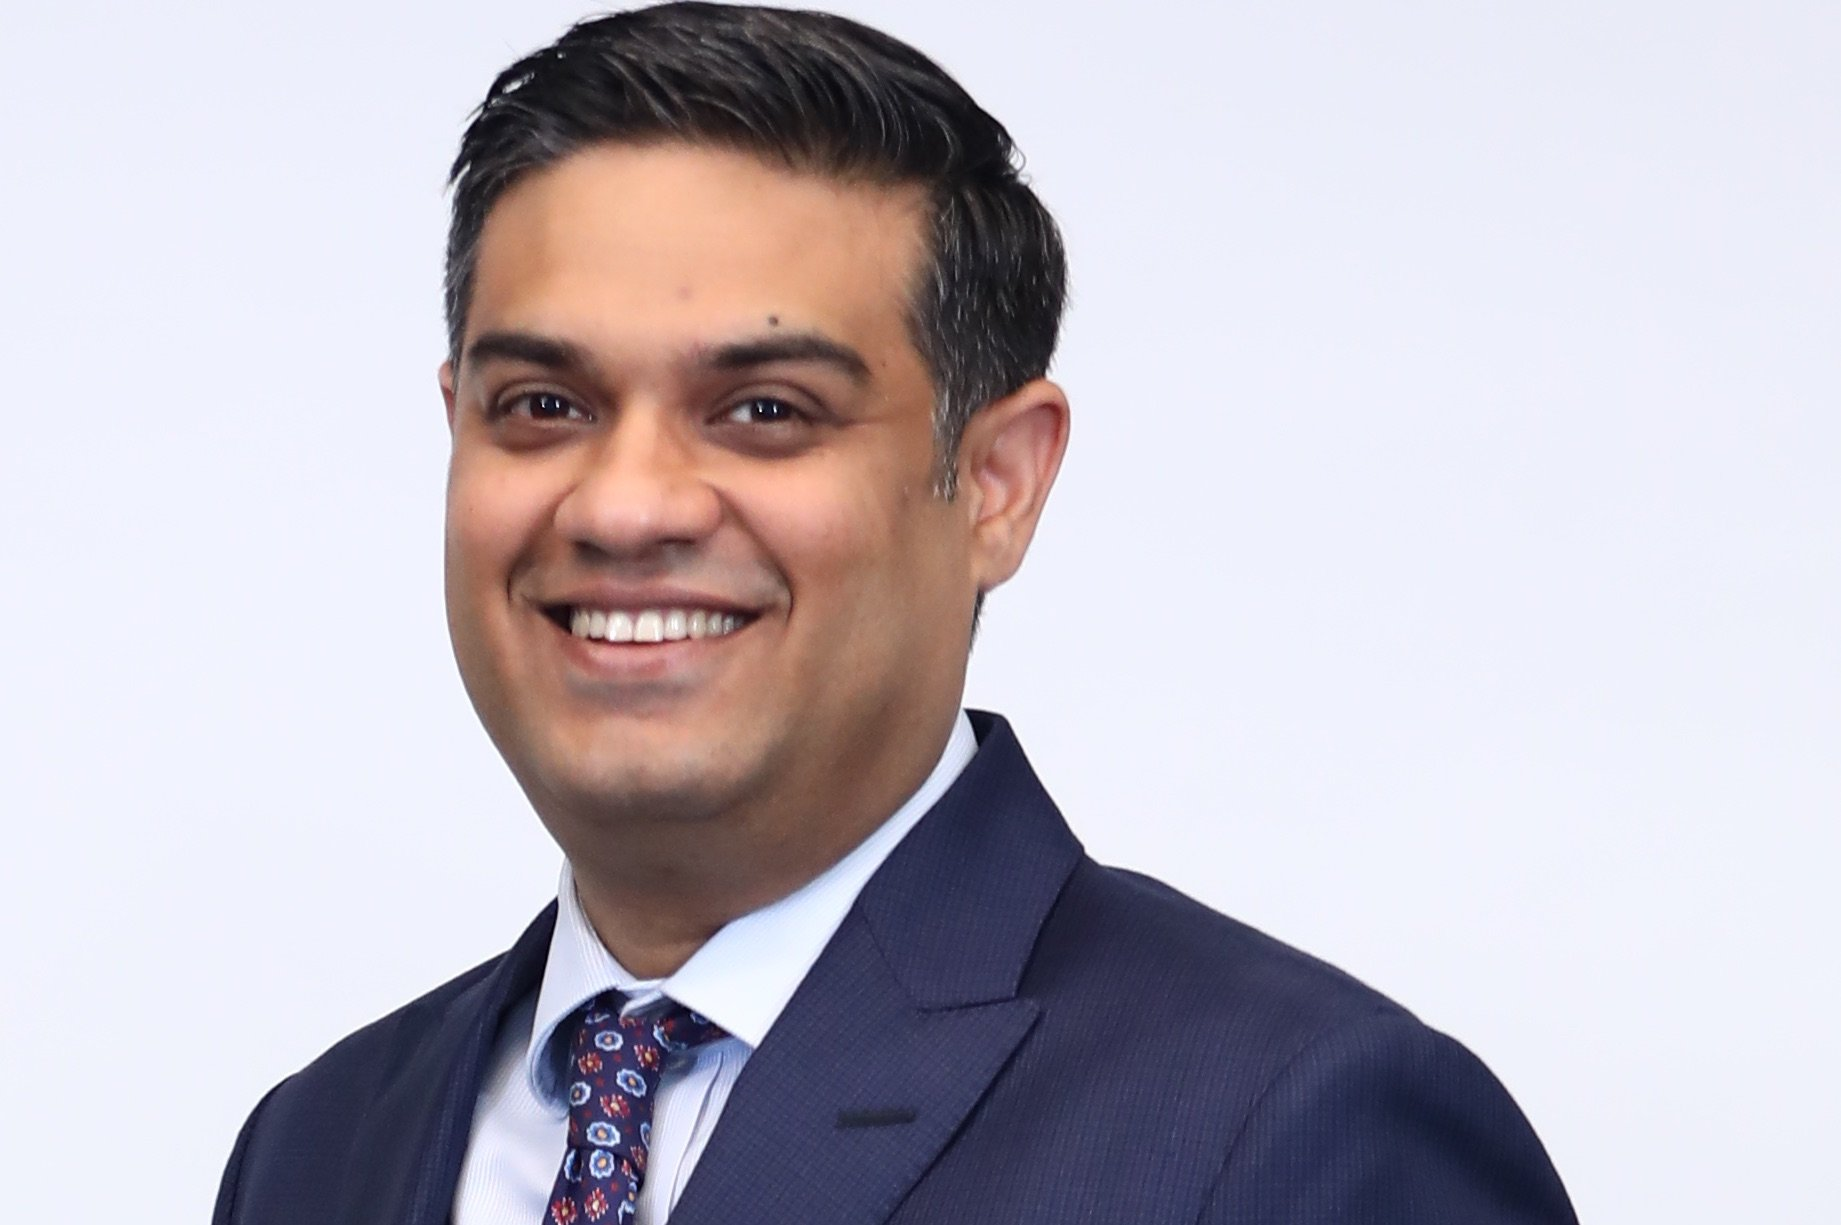 The 2019 Global Leaders in Consulting: Rahul Kapur